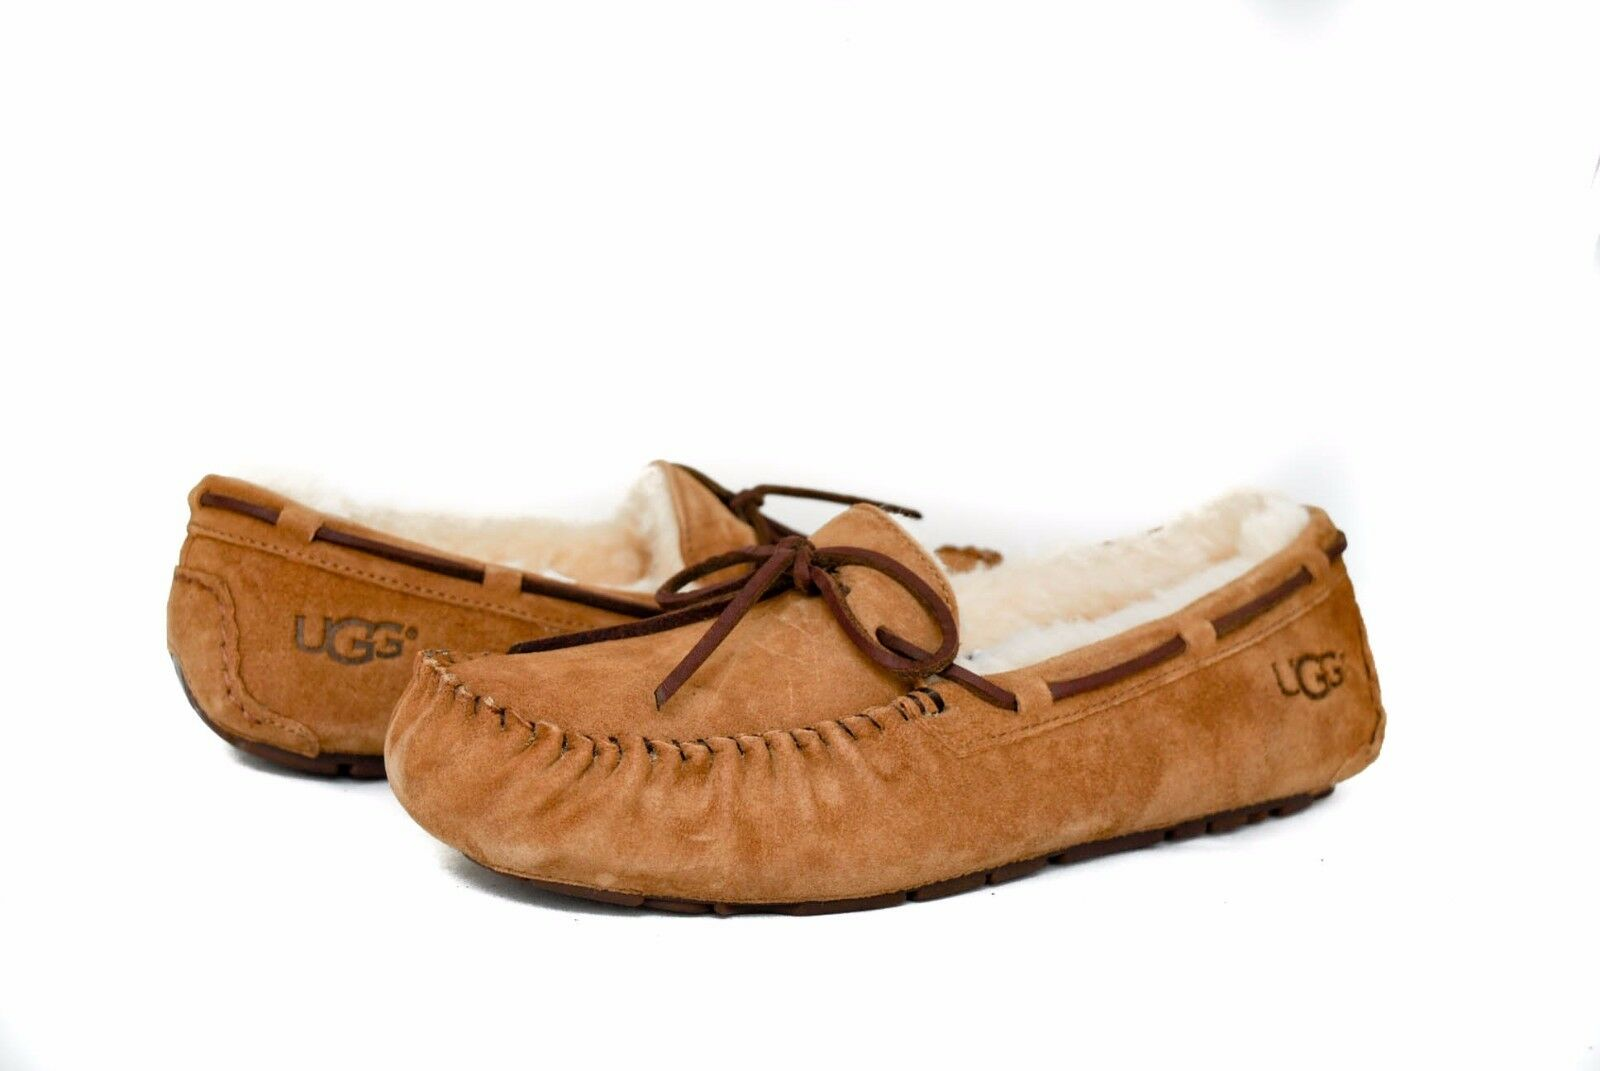 cc2a54a4012 UGG Women Dakota 5612 Moccasin Slipper in CHESTNUT Sz 5-12 NEW w/ Box